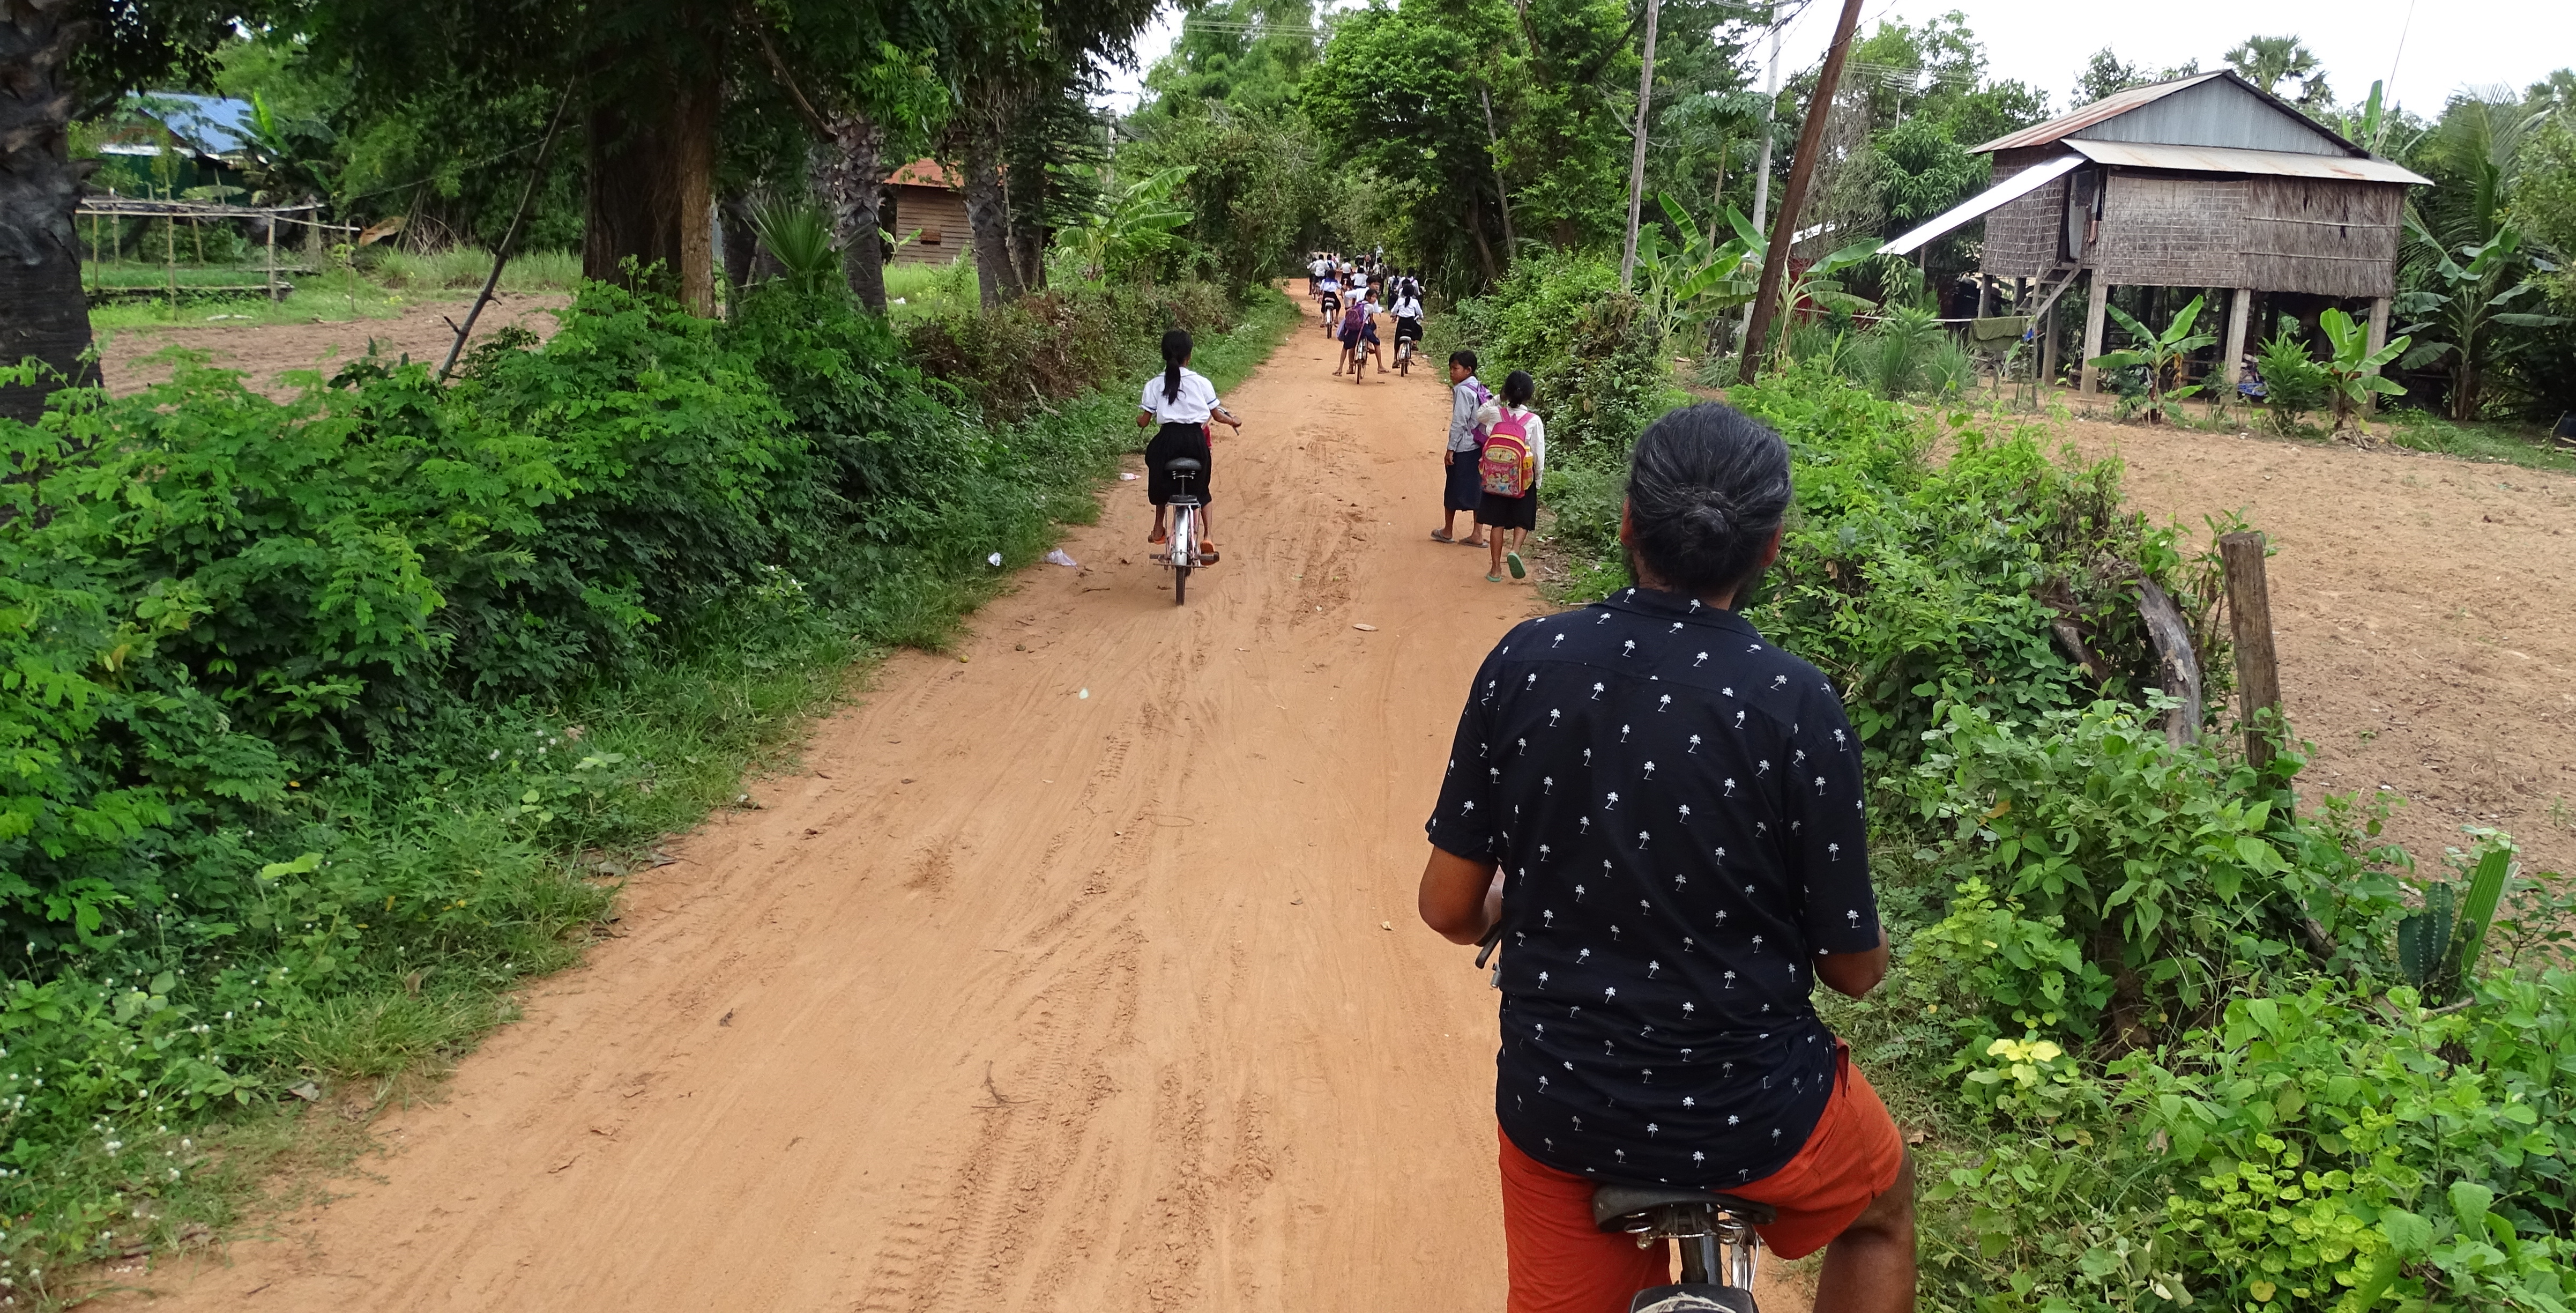 Sayak cycling on a dirt road in a Cambodian village, among children ins school uniforms